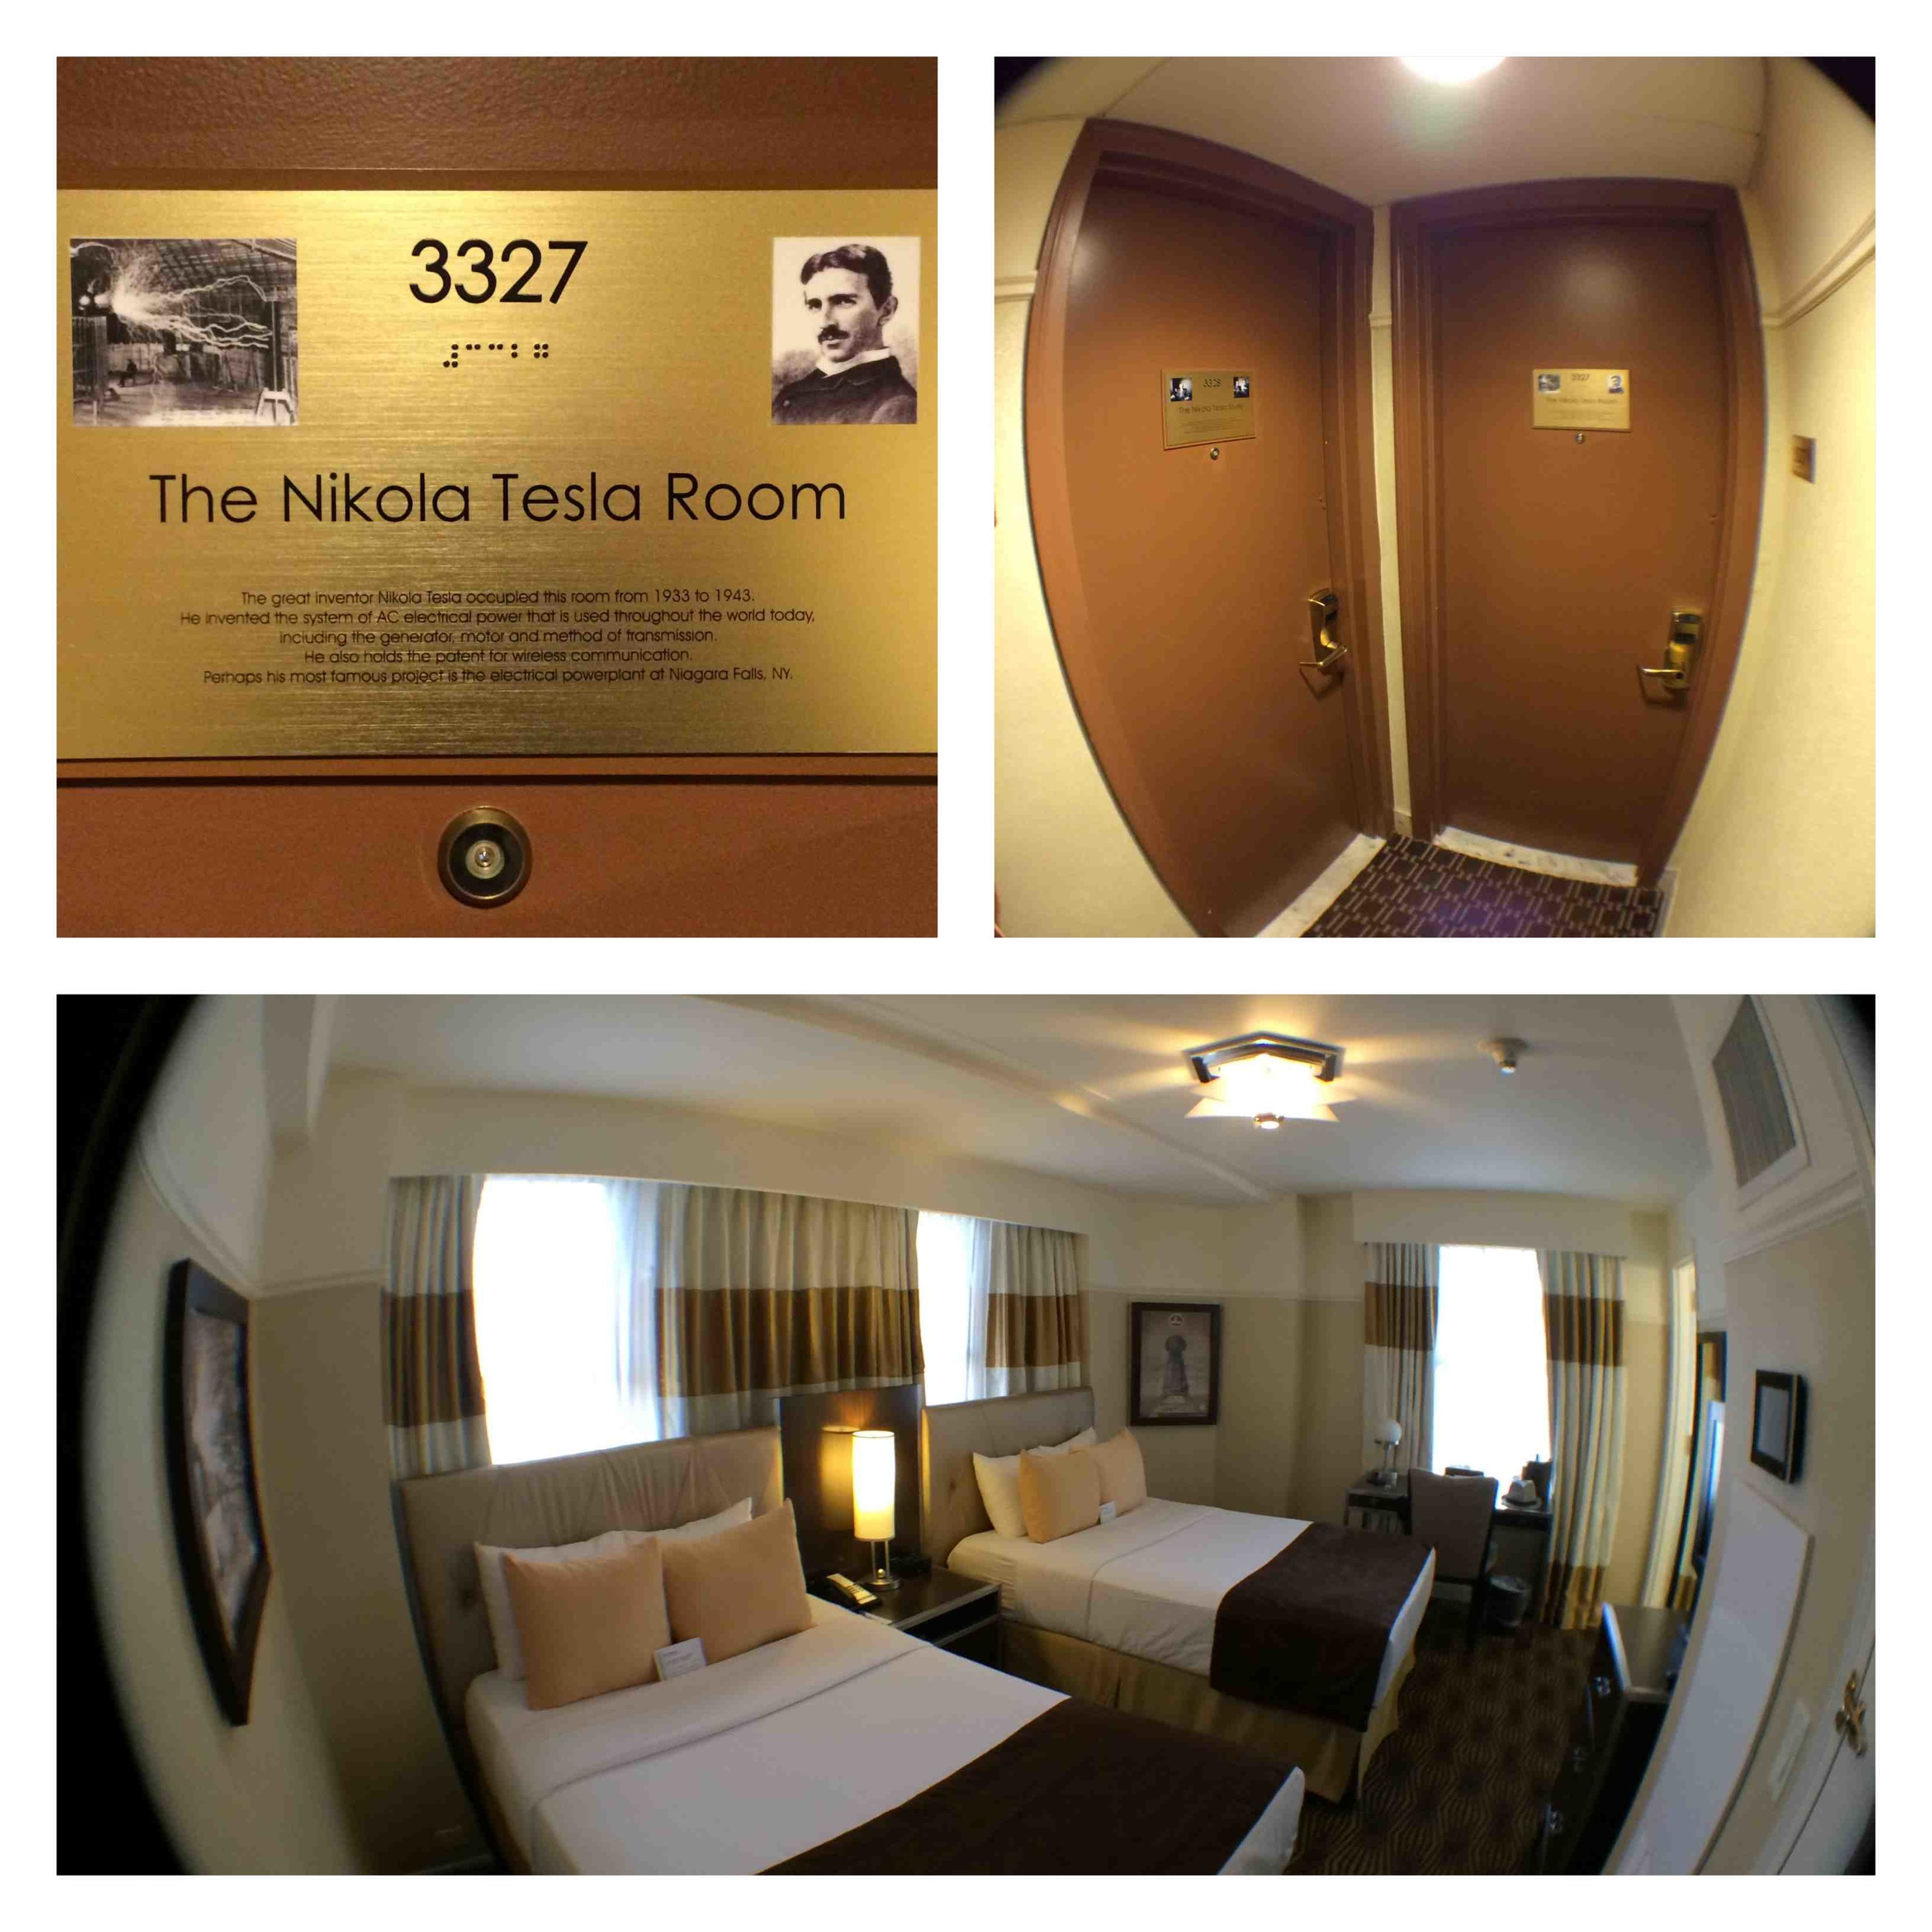 Nikola Tesla's Room 3327 at The New Yorker Hotel - September 2014